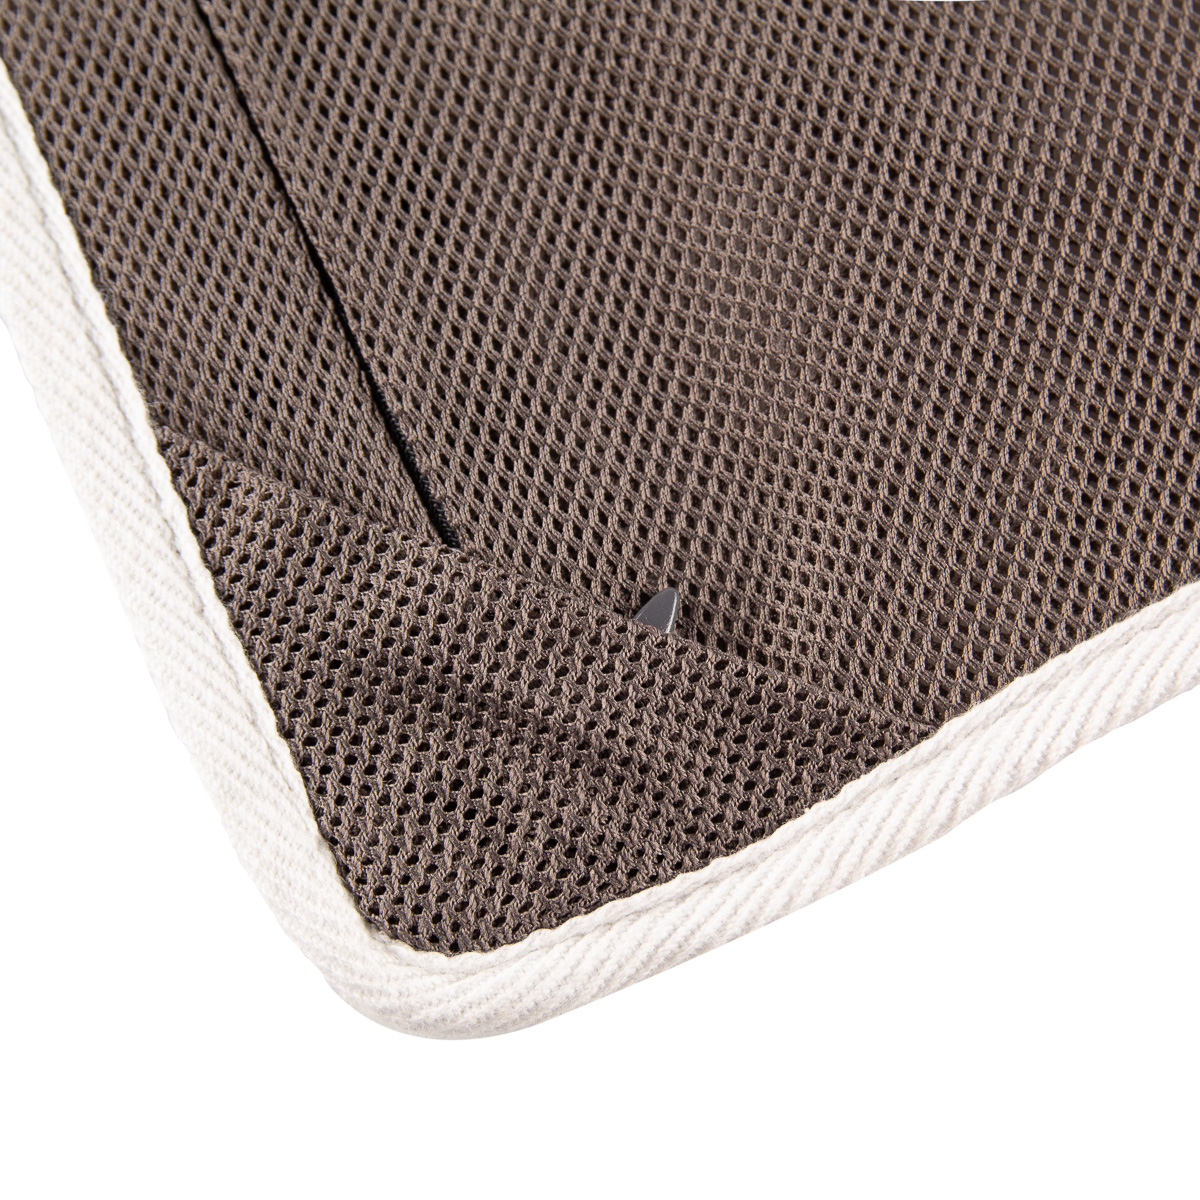 thumbnail 19 - Antibacterial-Gym-Towel-Fits-Securely-Over-Workout-Bench-Phone-Keys-Zip-Pocket